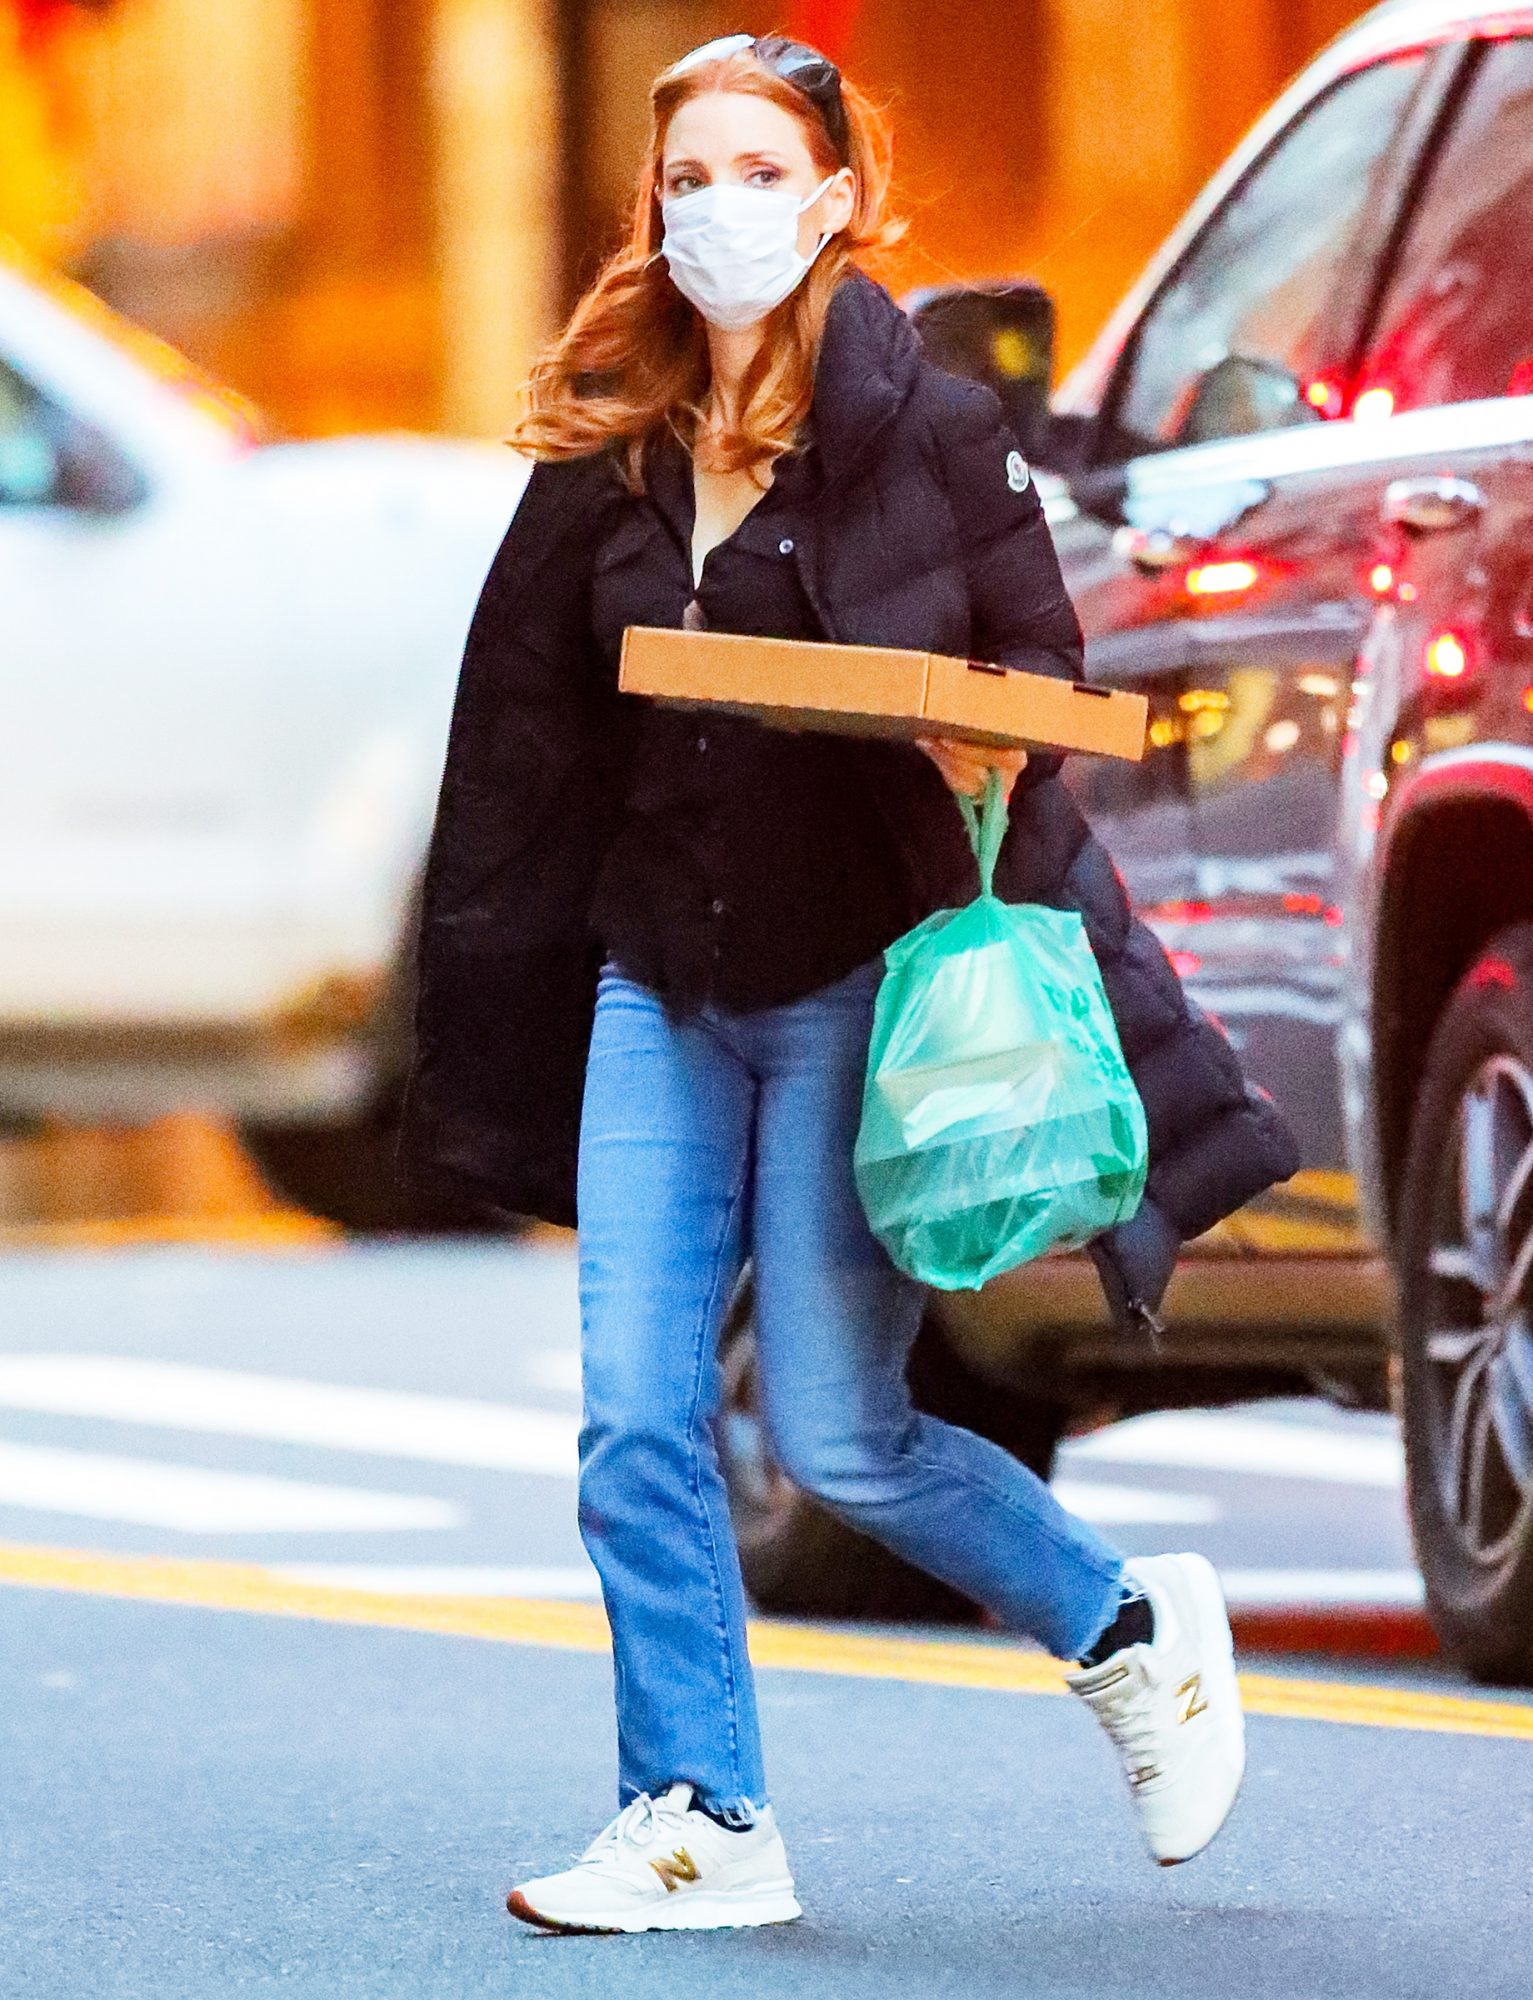 Jessica Chastain Carries A Large To-Go Order In New York City